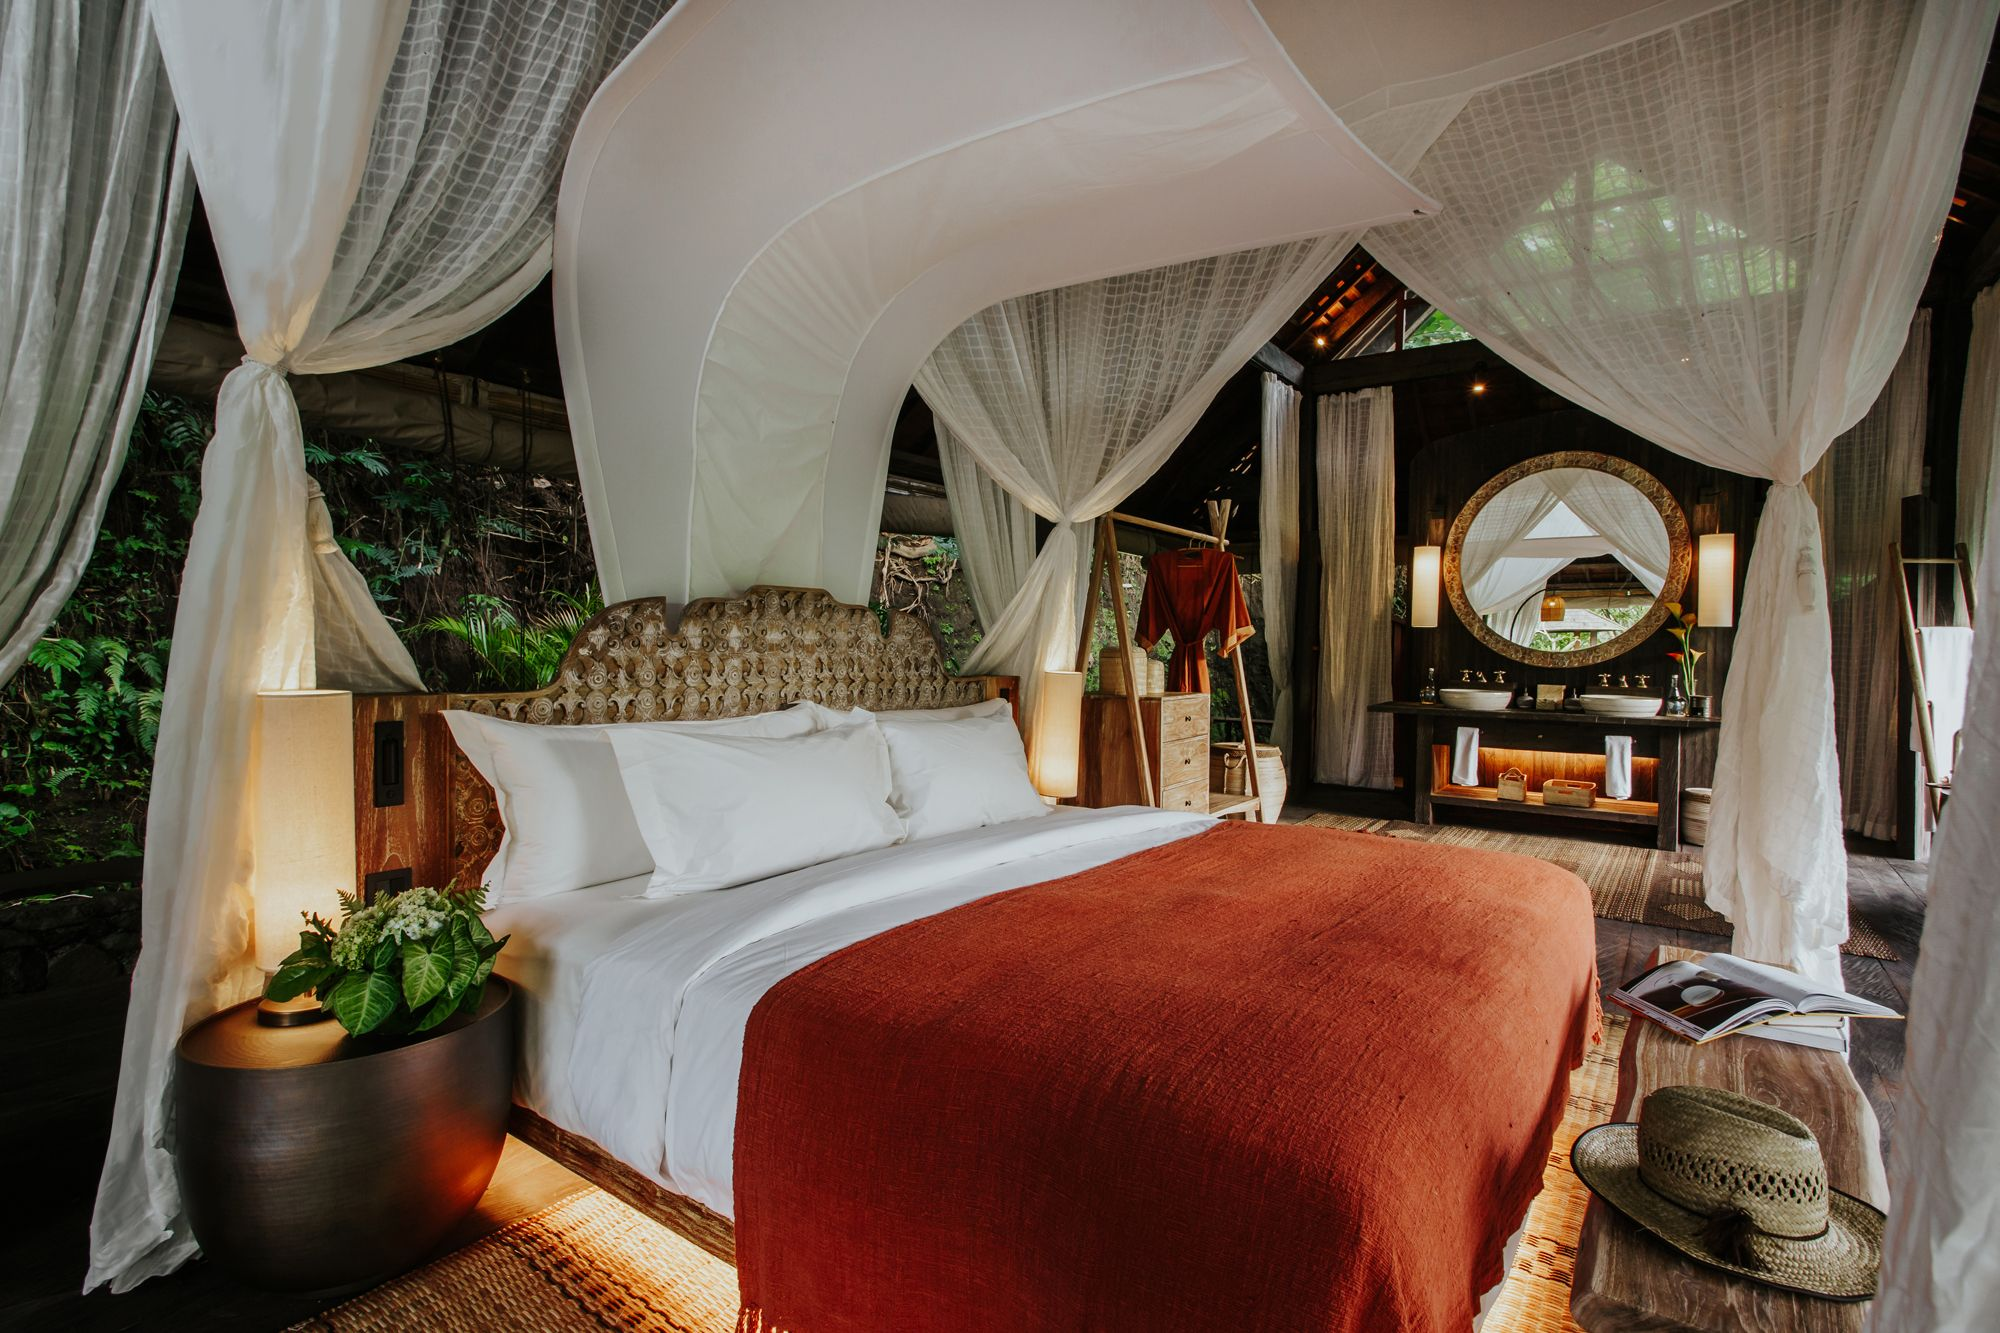 Each villa is decked out in warm furnishings and soft textiles Image: Courtesy of Banyan Tree Holdings